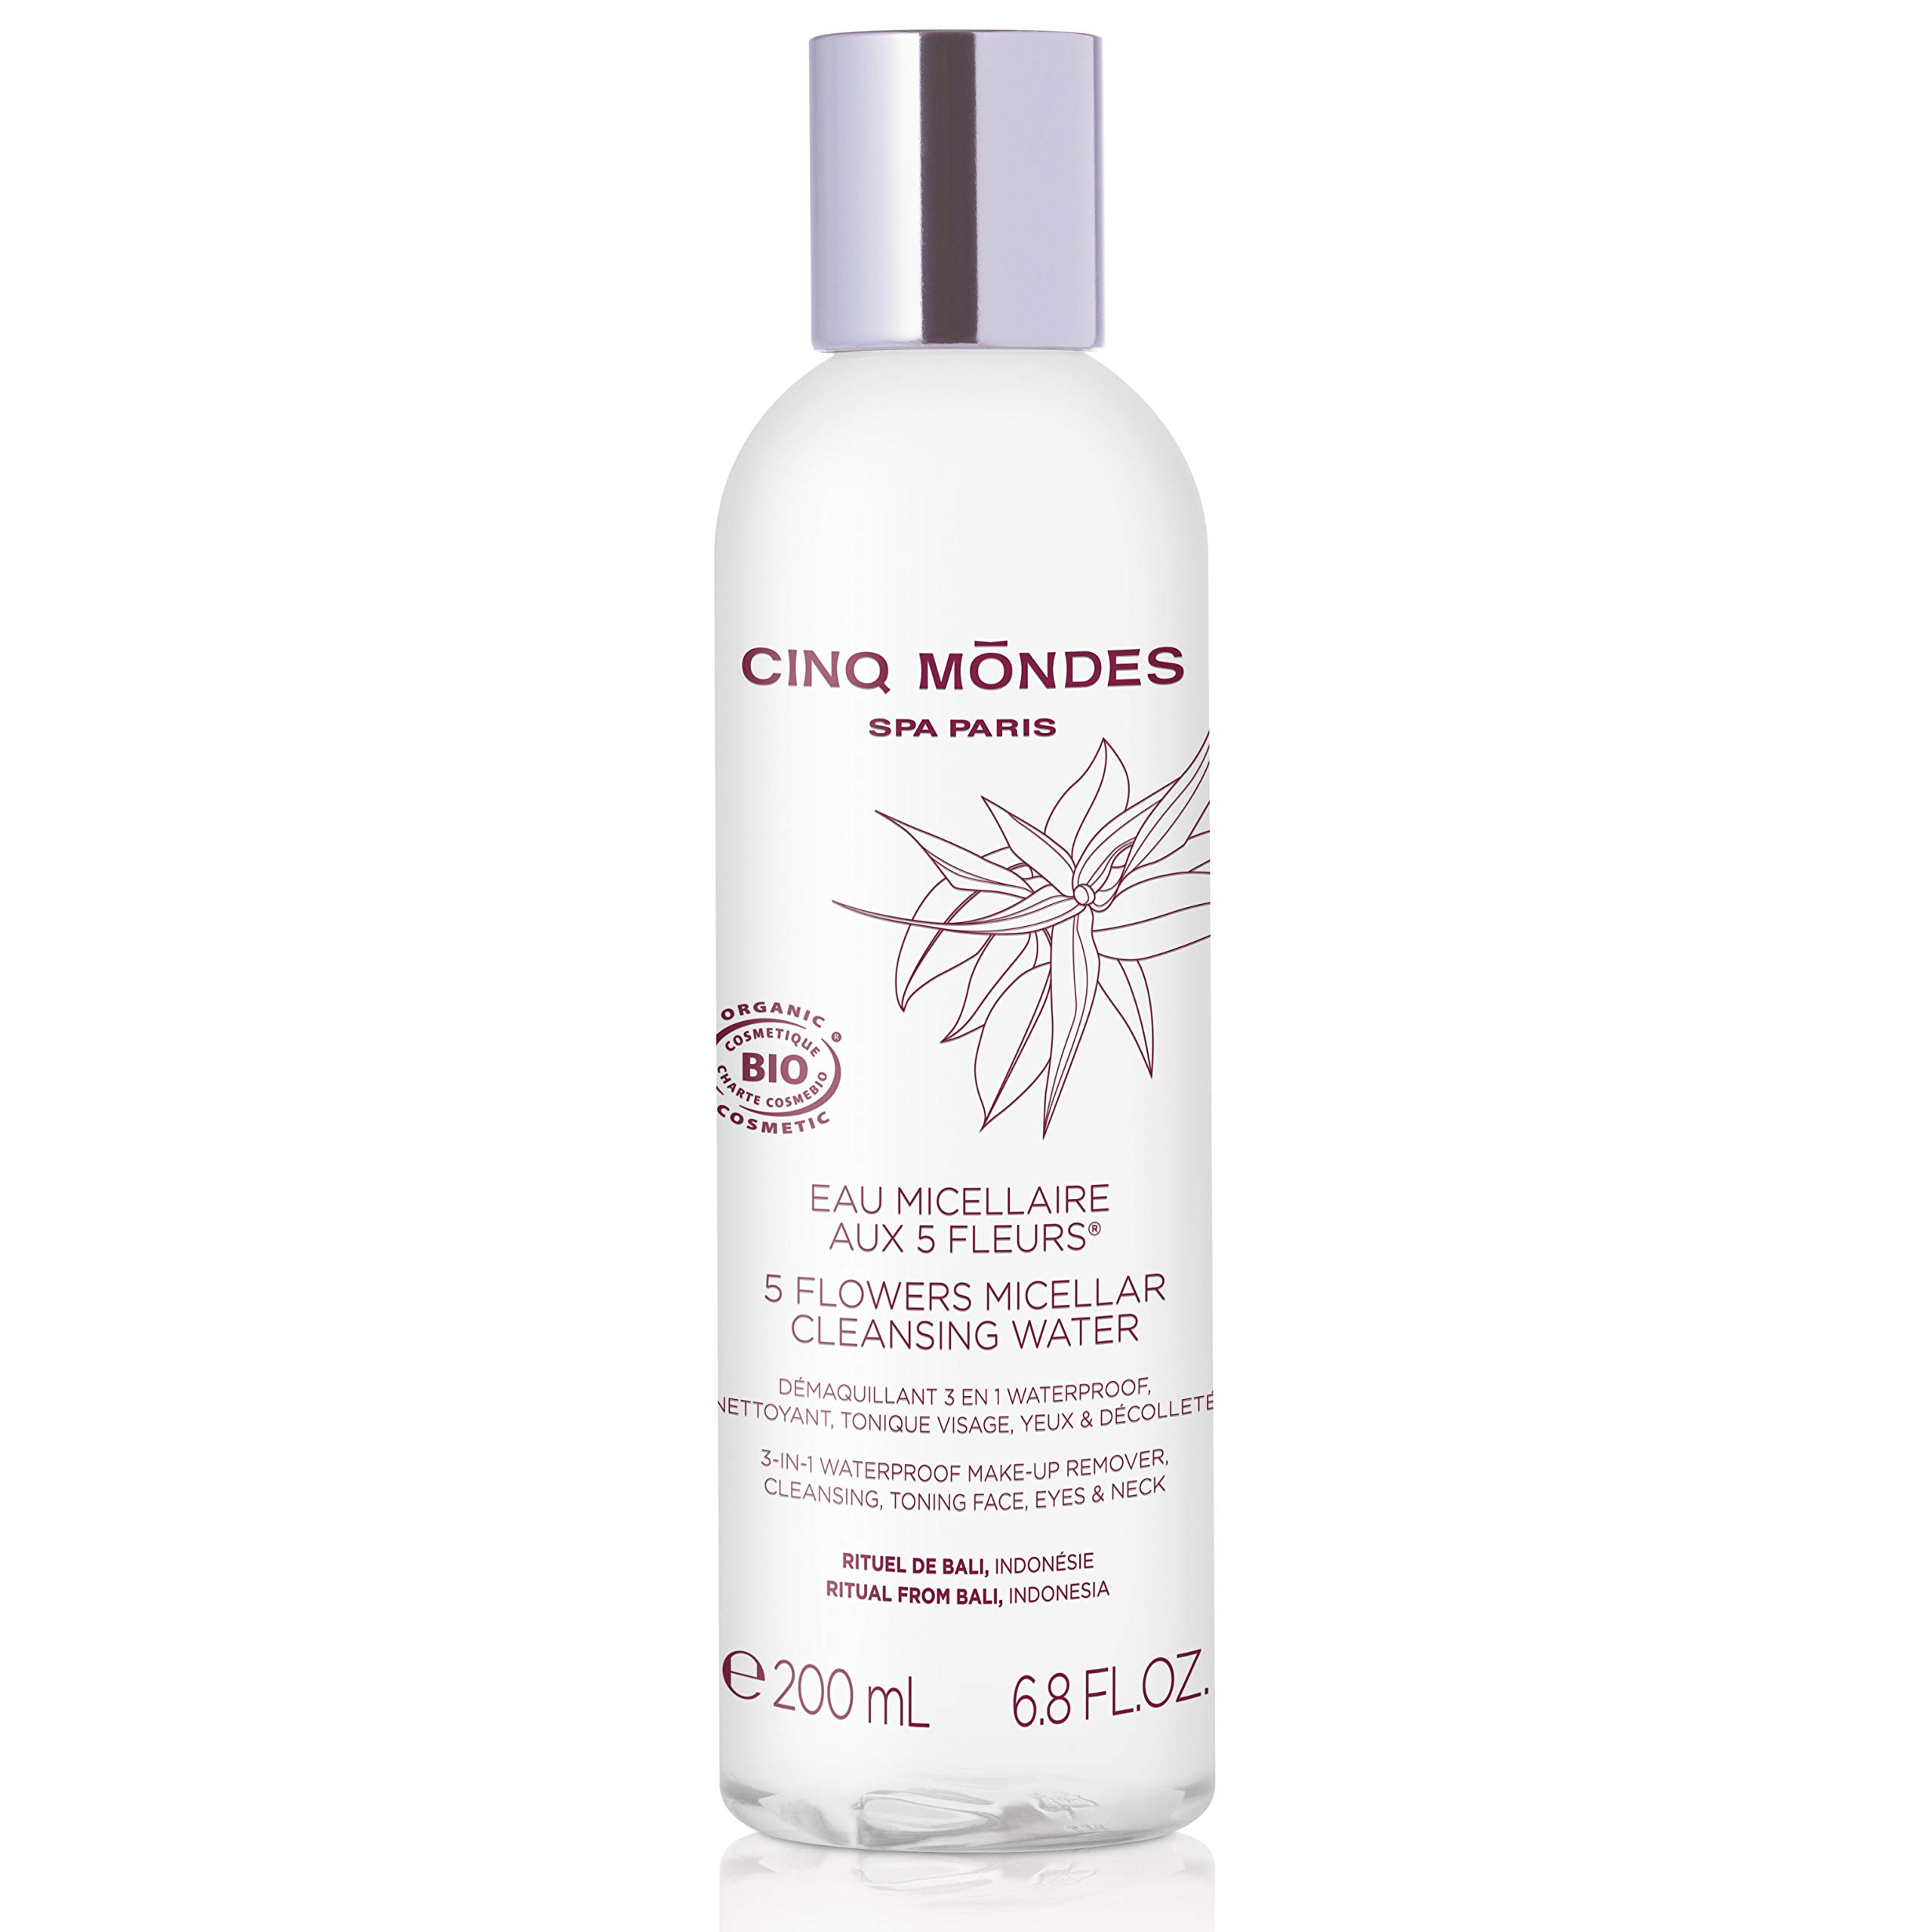 Five Flowers Micellar Water 200 ml by Cinq Mondes by CINQ MONDES